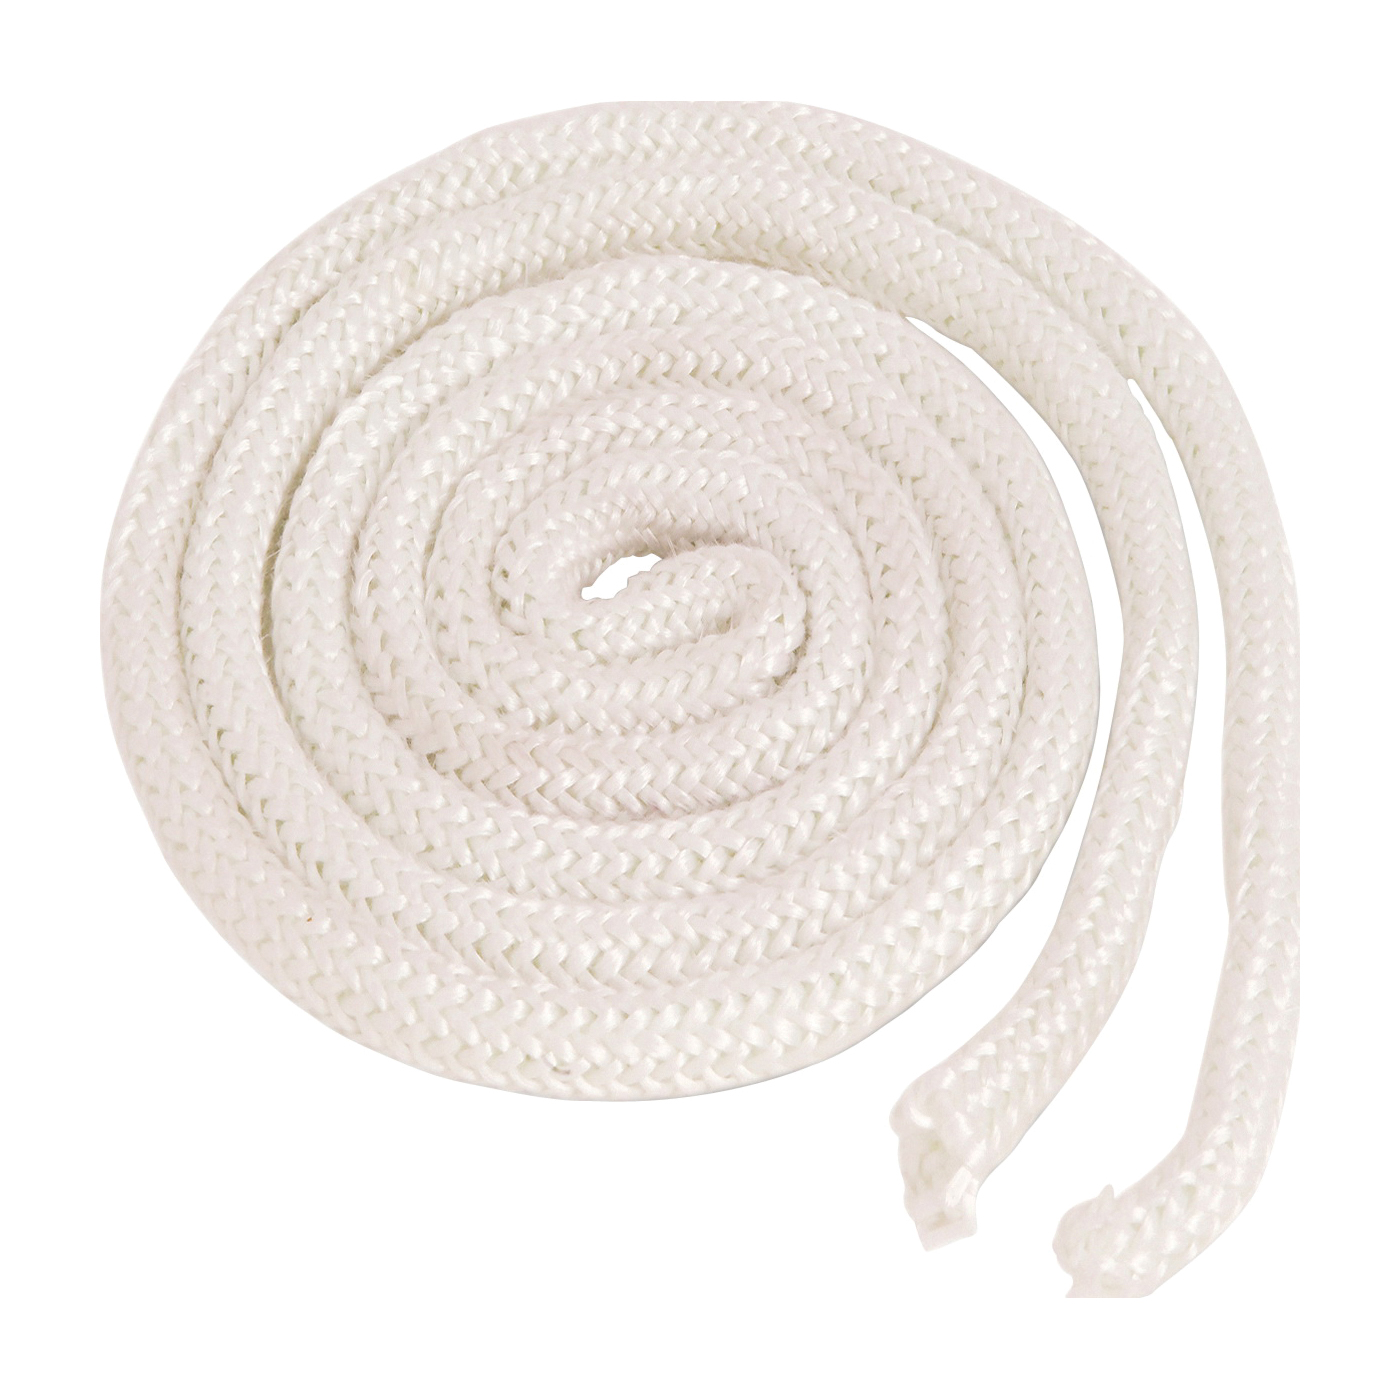 Picture of Imperial GA0153 Gasket Rope, 6 ft L, 1/4 in W, Fiberglass